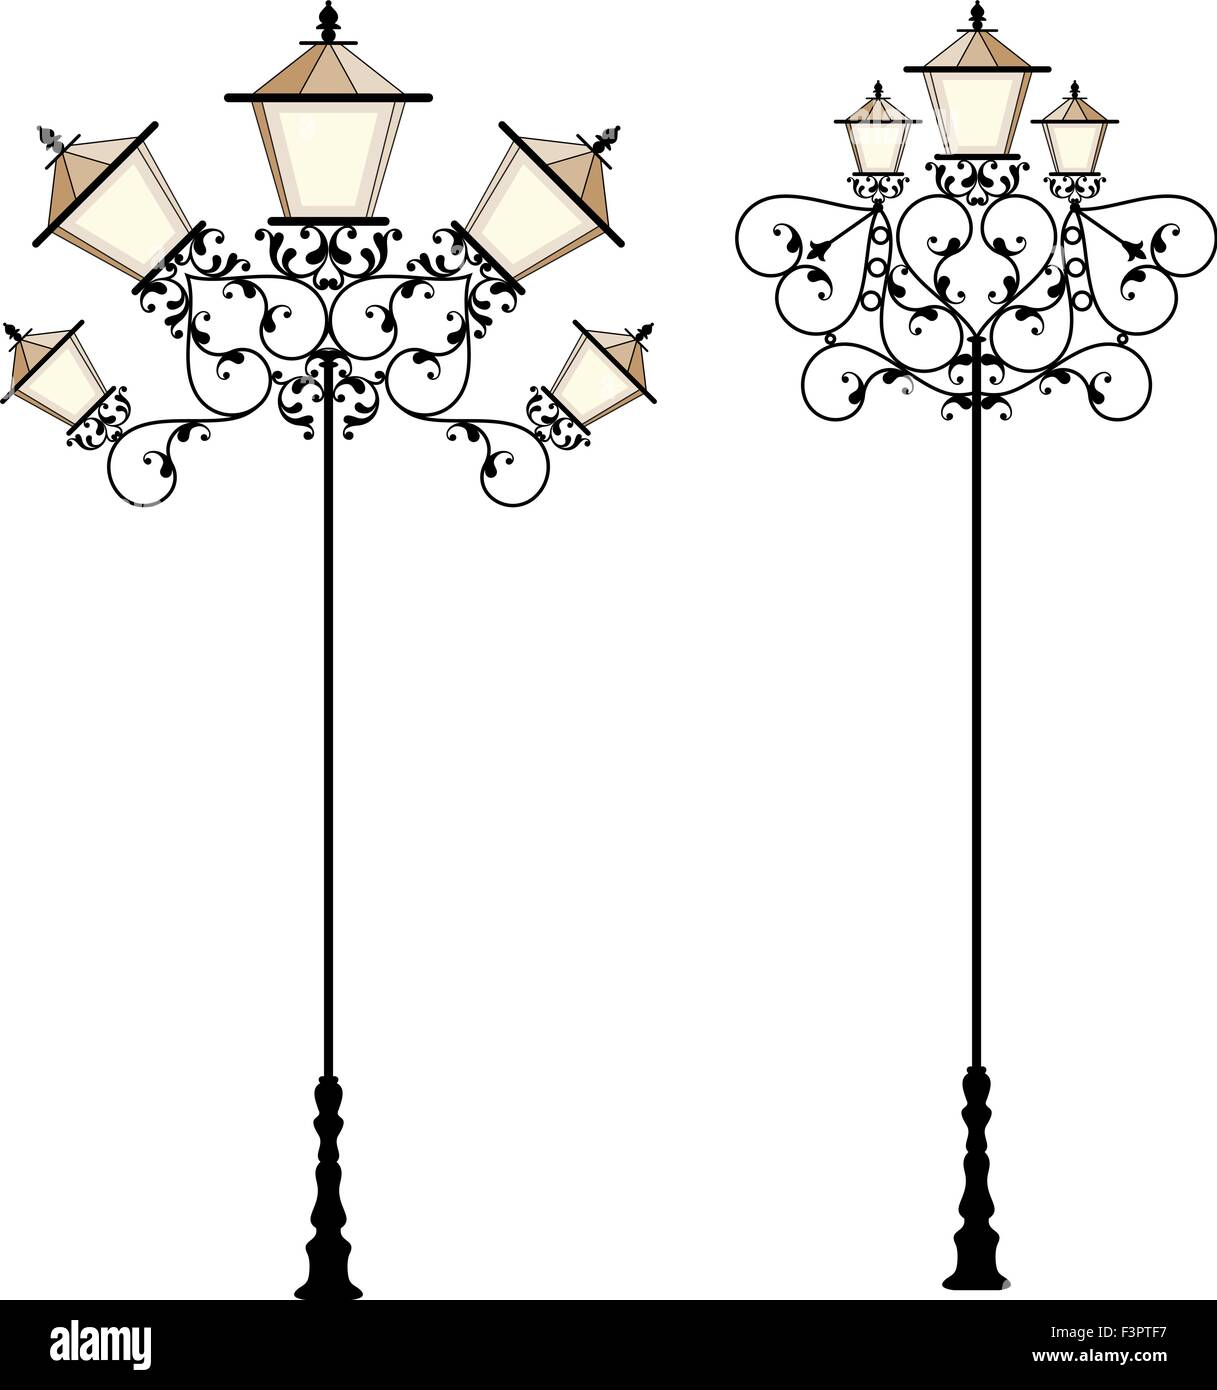 Wrought Iron Street Lamp Post Vector Art Stock Vector Art ... for Street Lamp Post Vector  303mzq